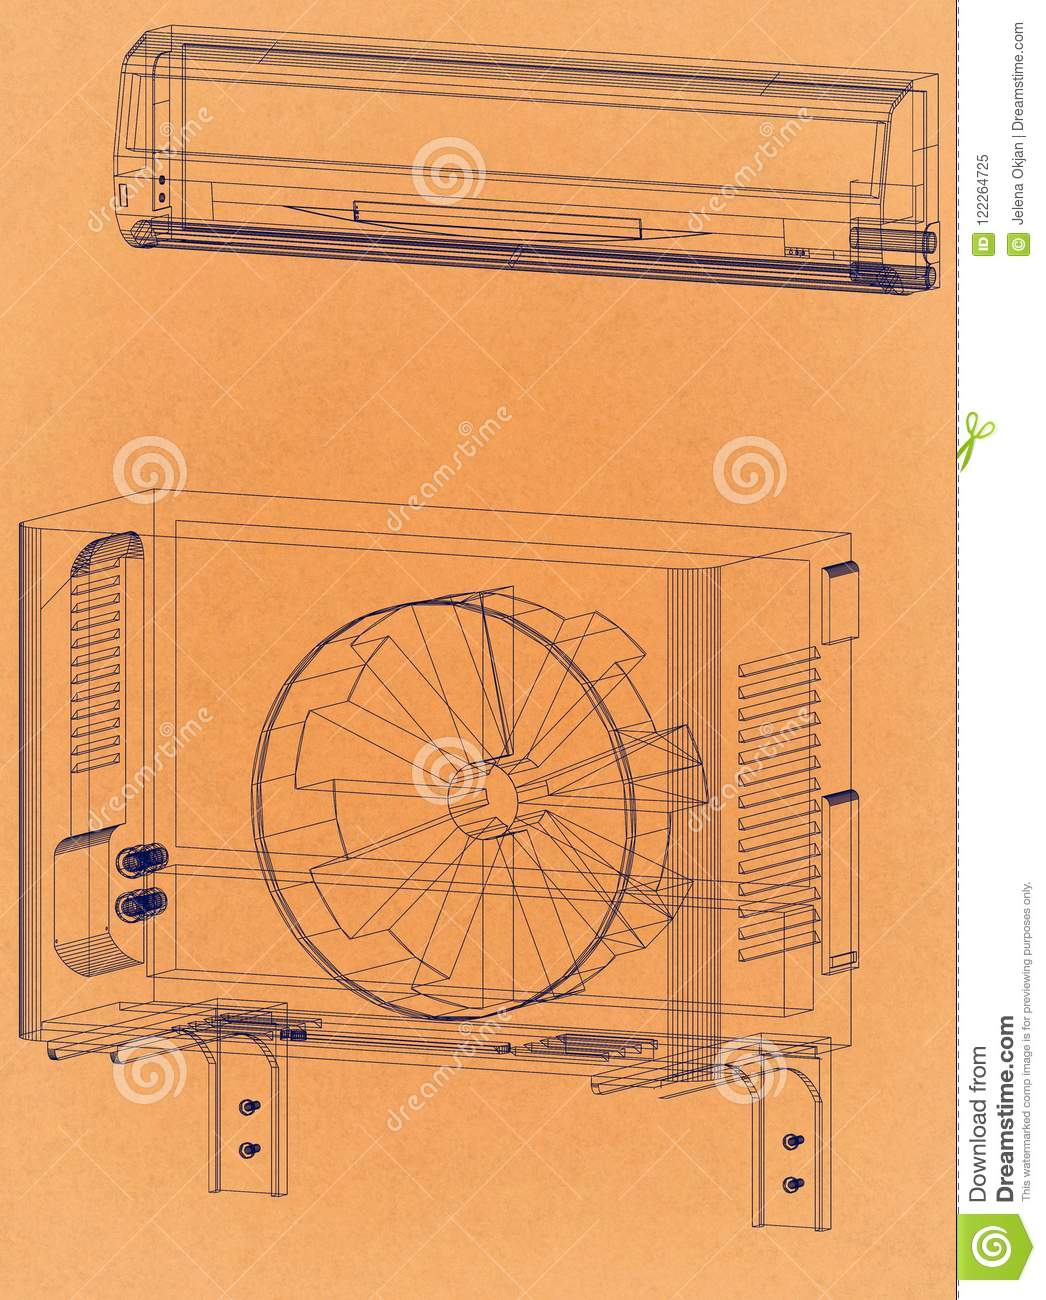 Air Conditioner Blueprint Tempstar Ac Unit Wiring Diagram Free Download Shoot Retro Architect Image 1046x1300